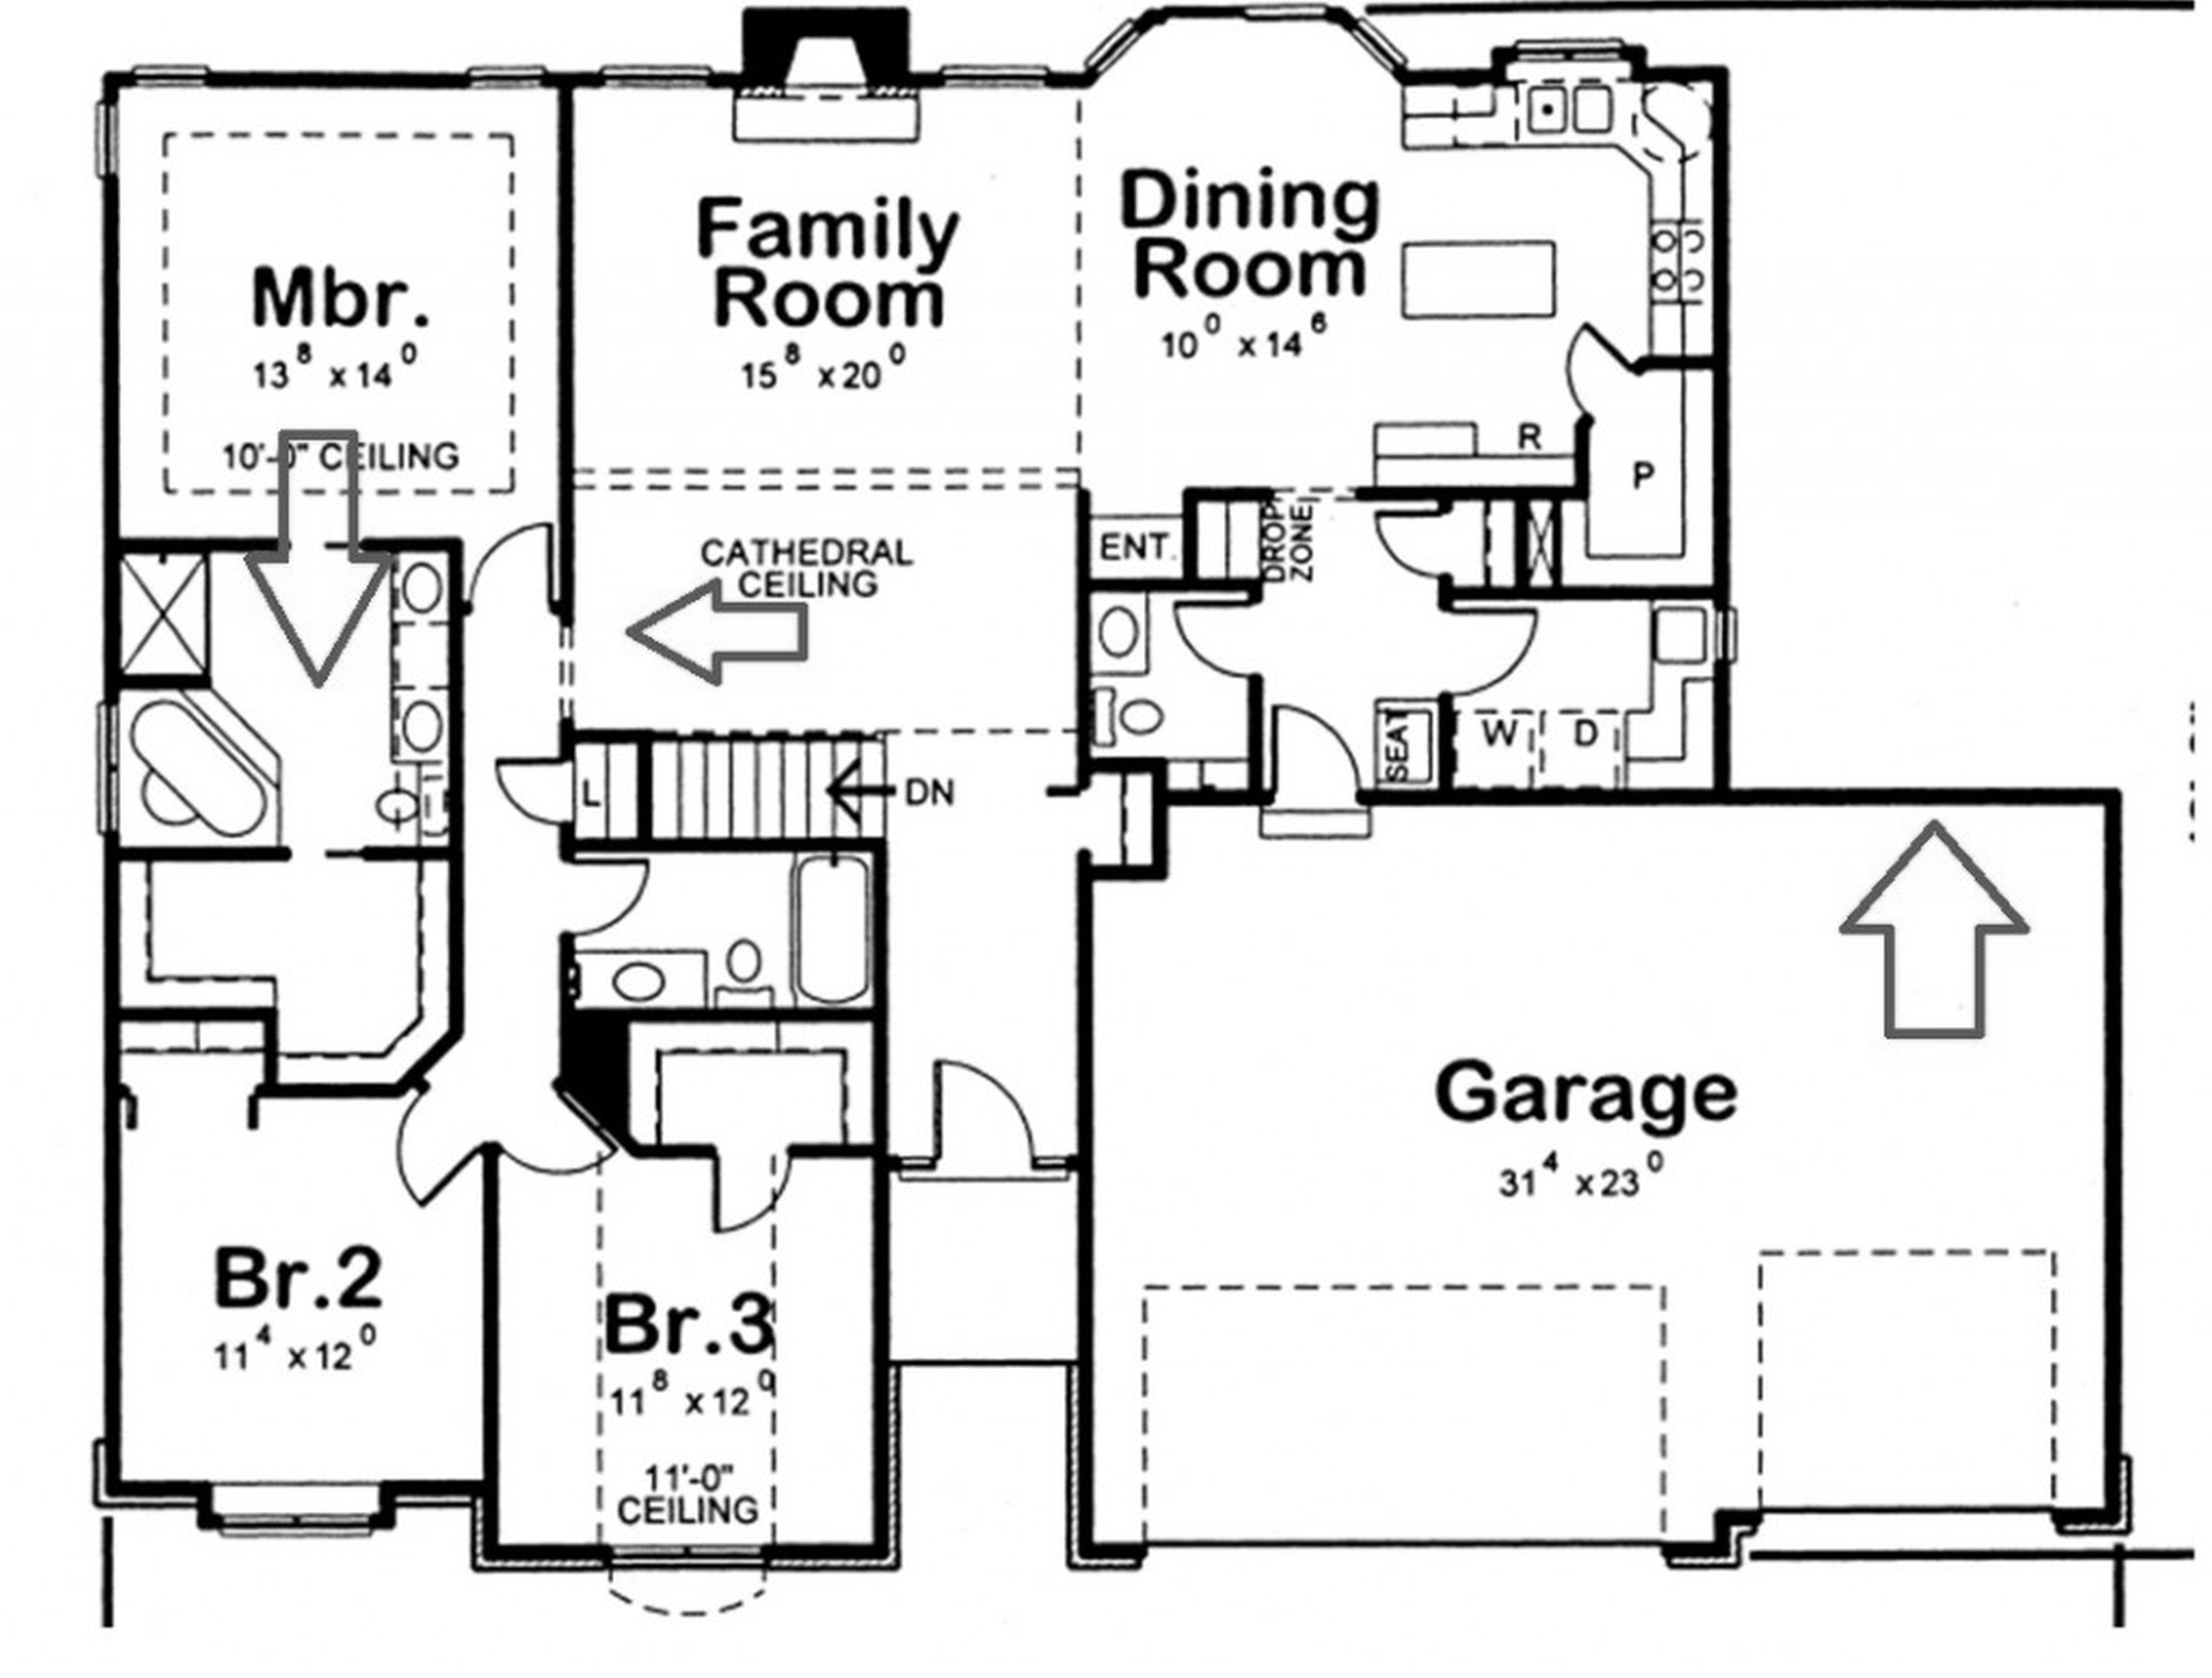 4 Bedroom Home Plans And Designs Tree House Home Floor Plans  Tree Houses Dff  Pinterest  Tree